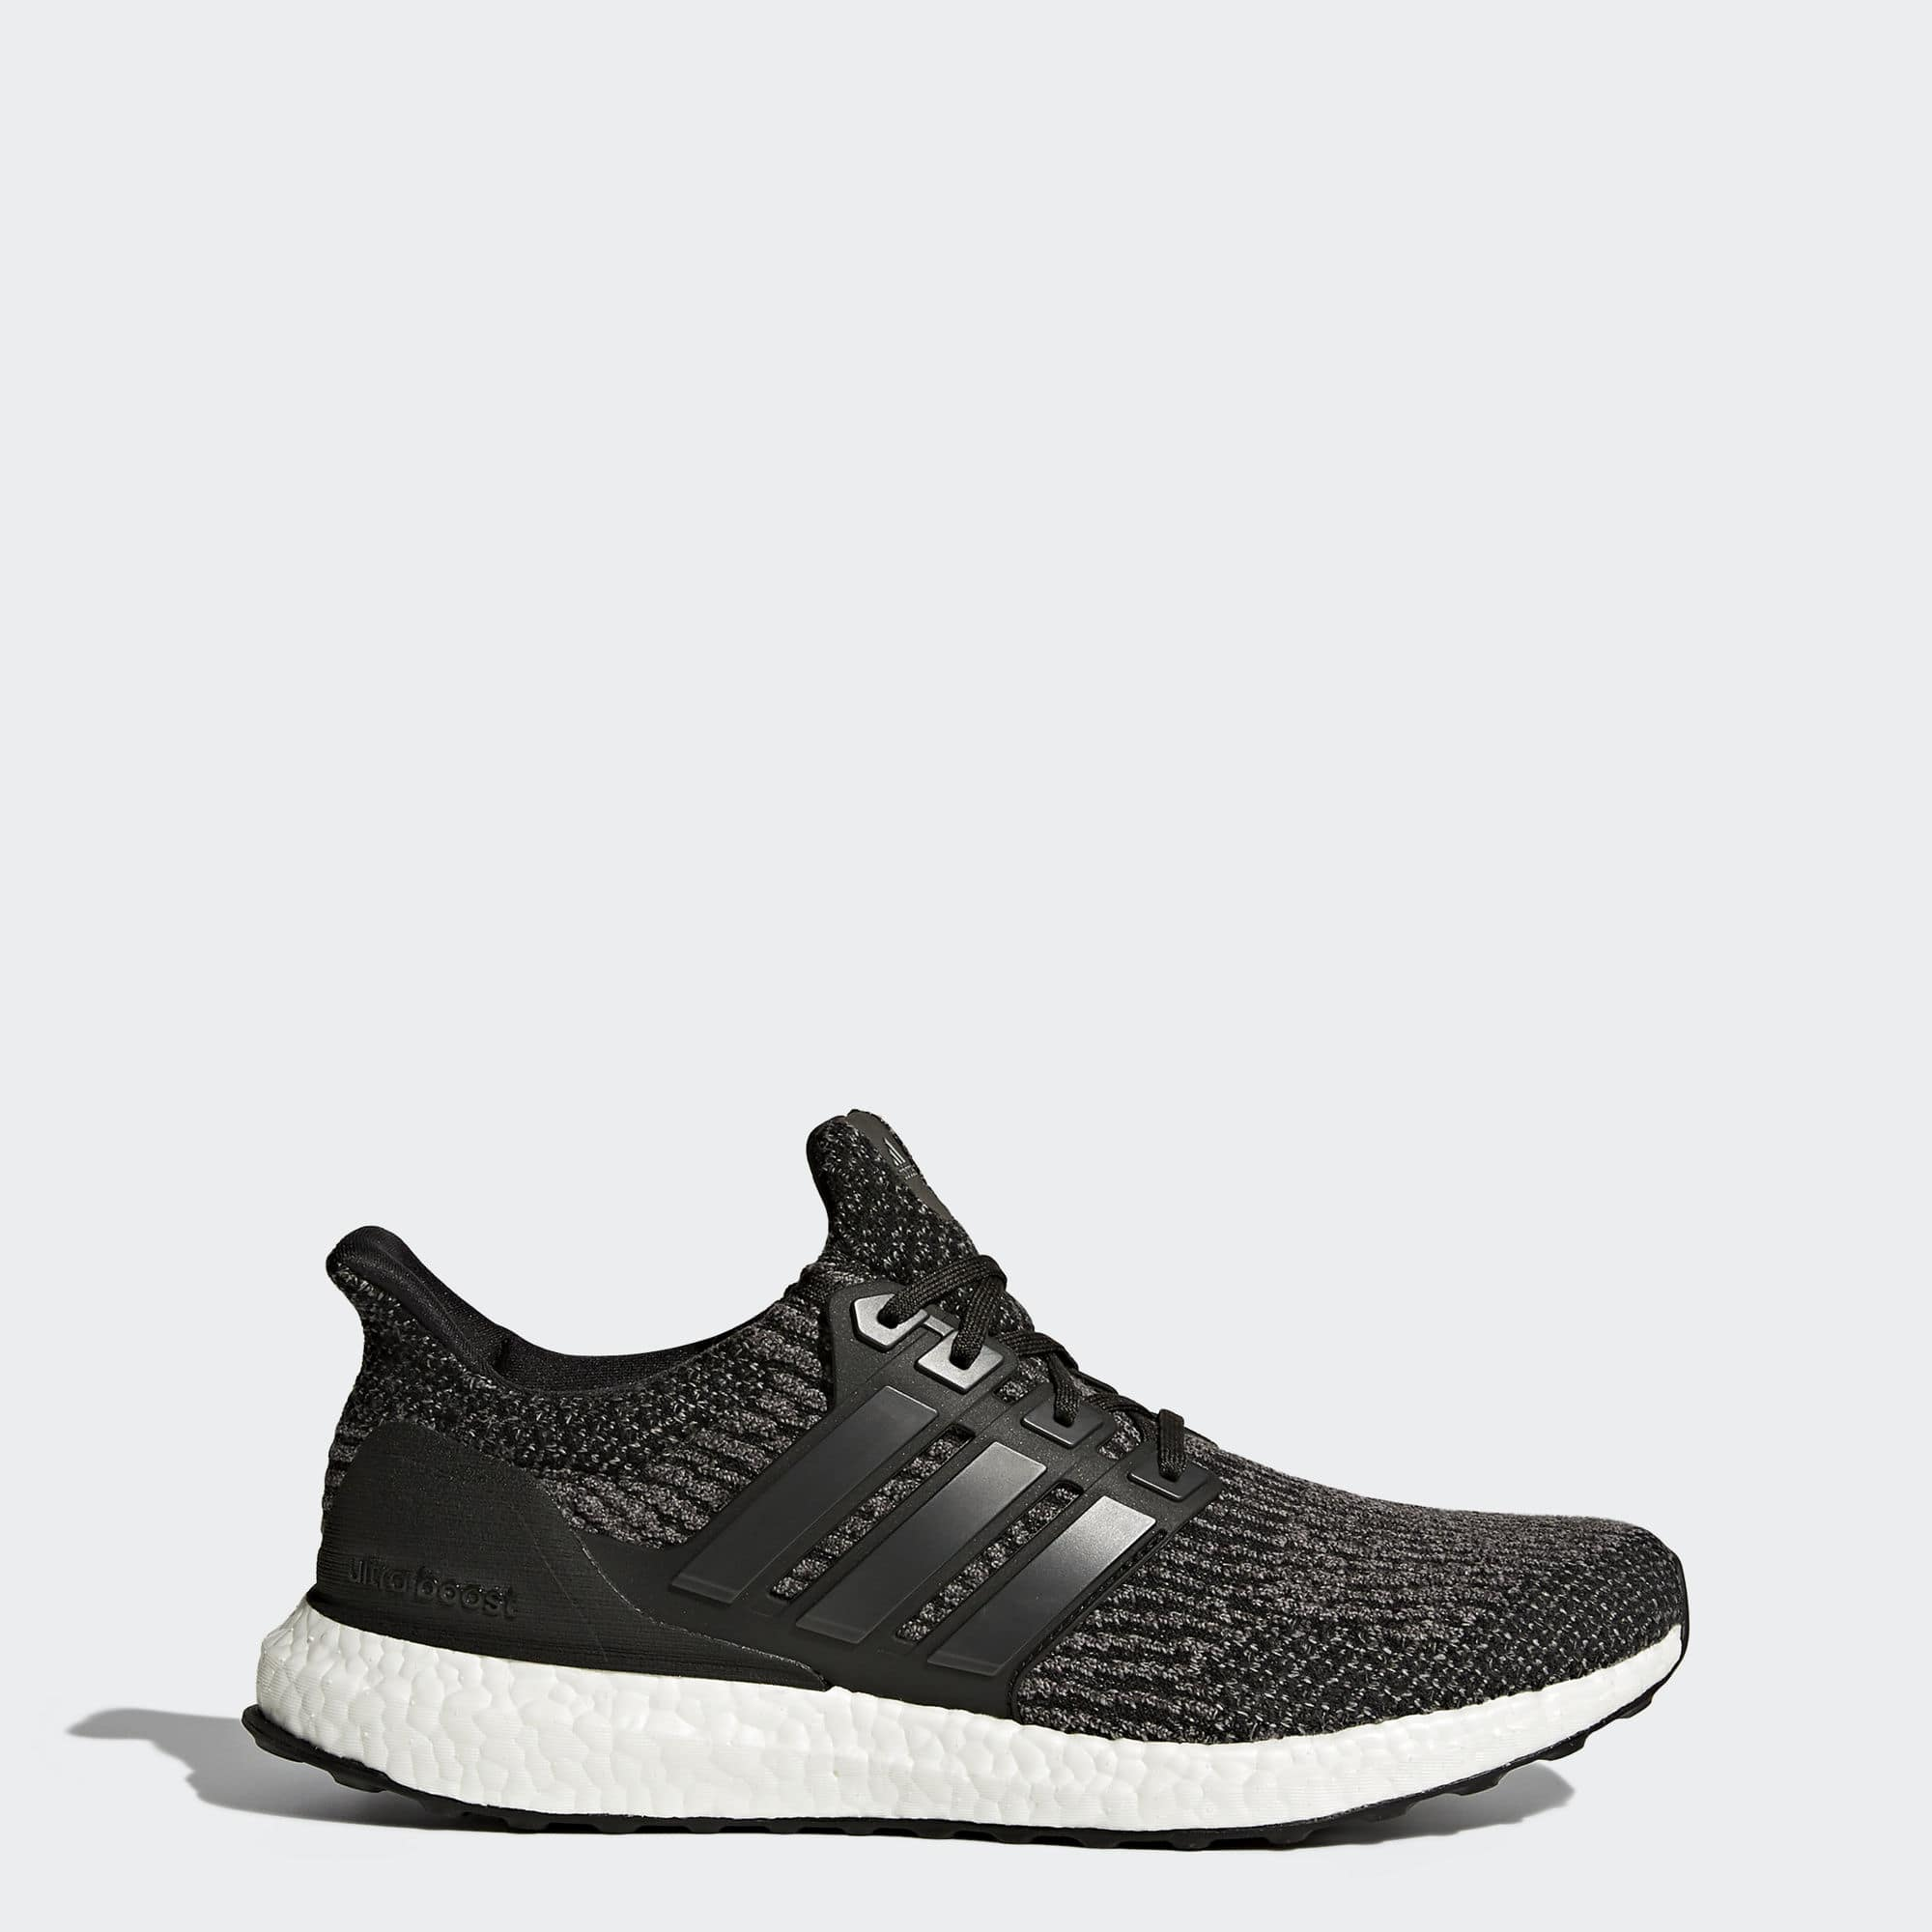 ef99719b2 Men s Adidas Ultraboost (Black or Grey)  87.95 with 3 pairs of Parma 16  shorts.